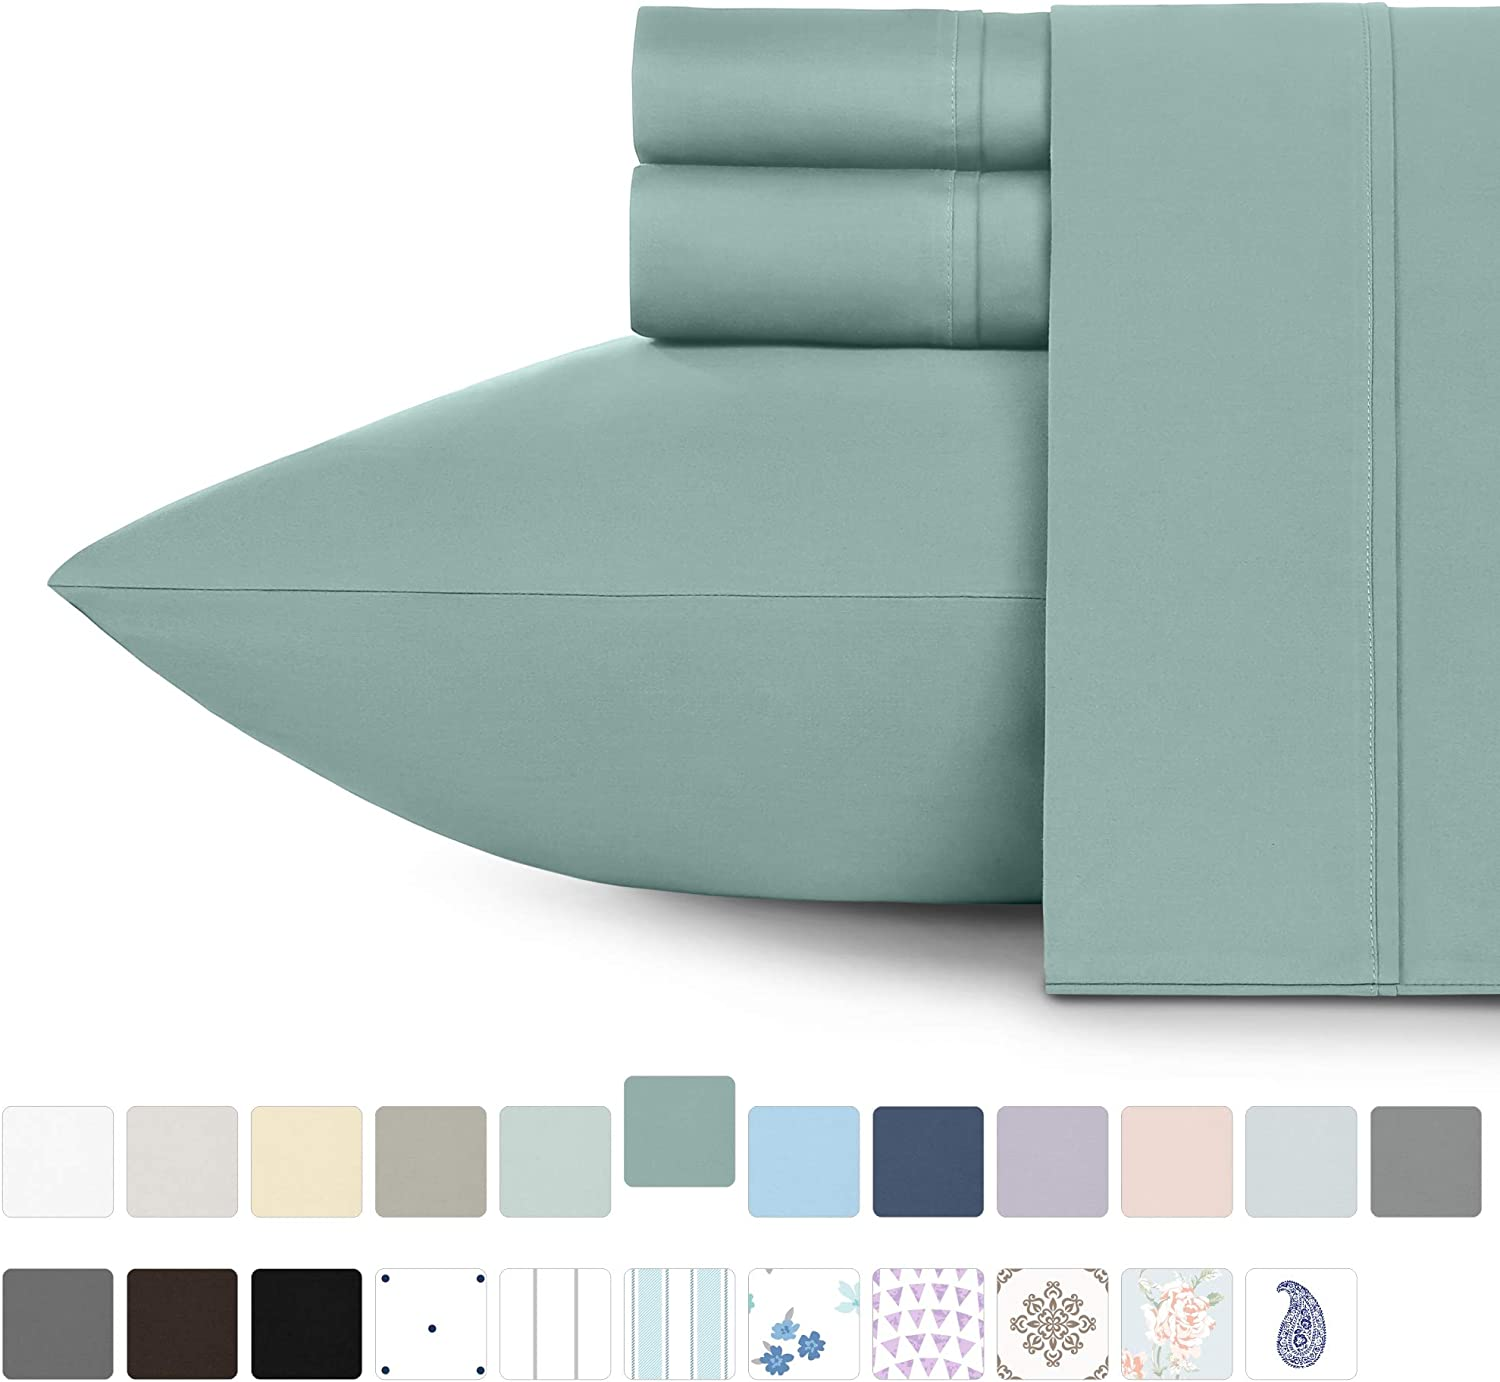 Premium 400-Thread-Count 100% Natural Cotton Sheets - 4-Piece Green Sage Queen Size Sheet Set Long-Staple Combed Cotton Bed Sheets for Bed Sateen Weave Sheets Set Fits Mattress Upto 18'' Deep Pocket